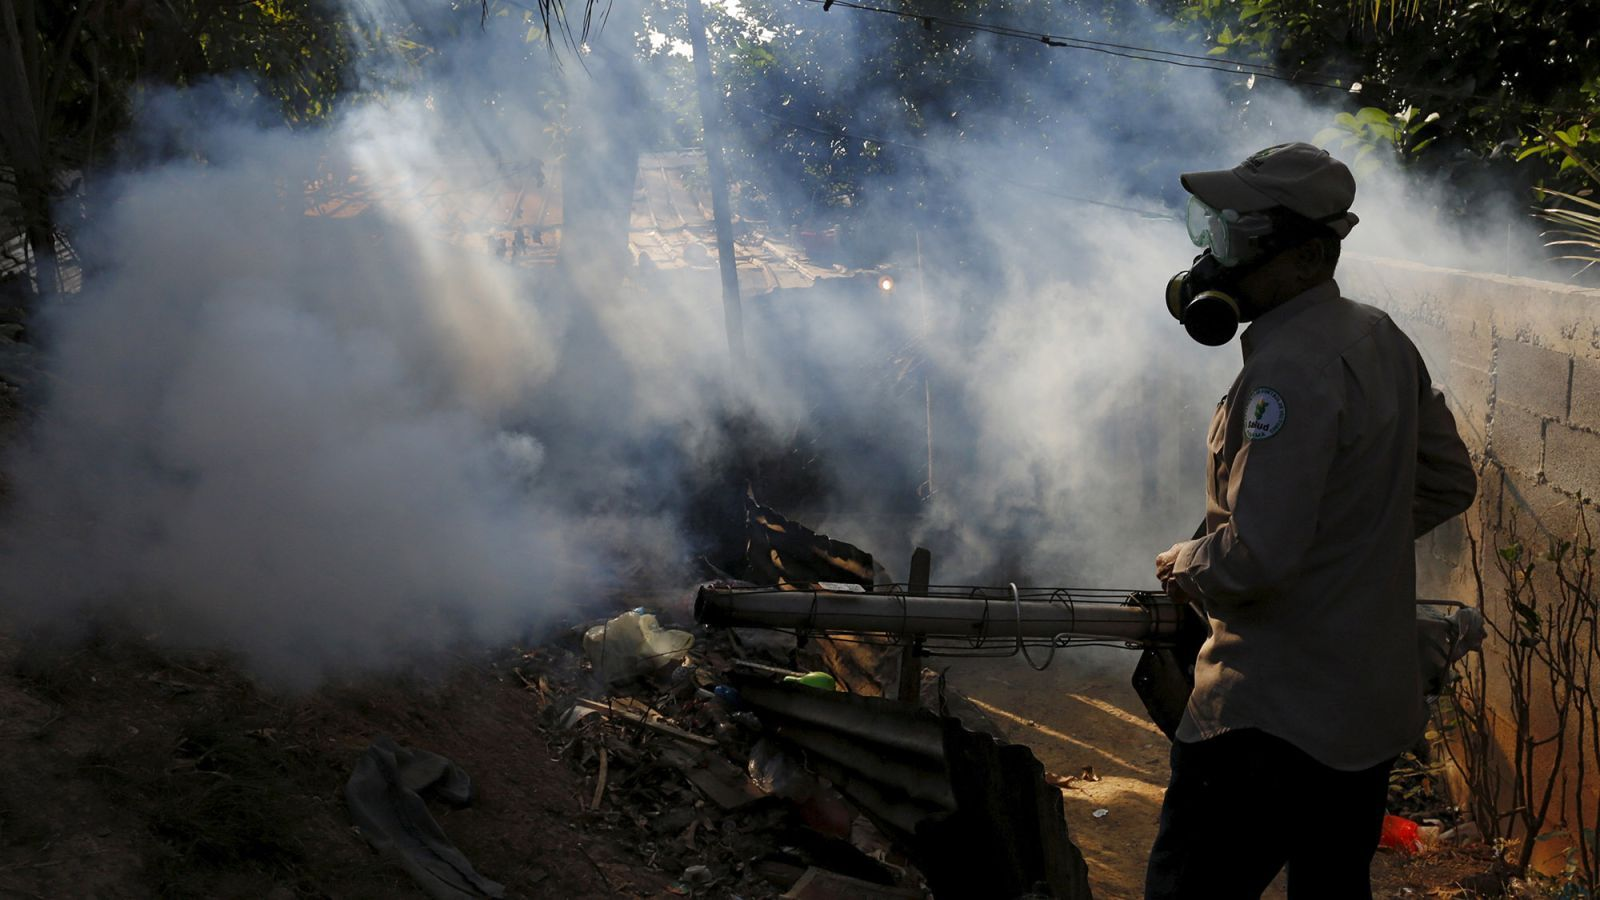 Scientists in epidemic's hot zone explain why Zika's link